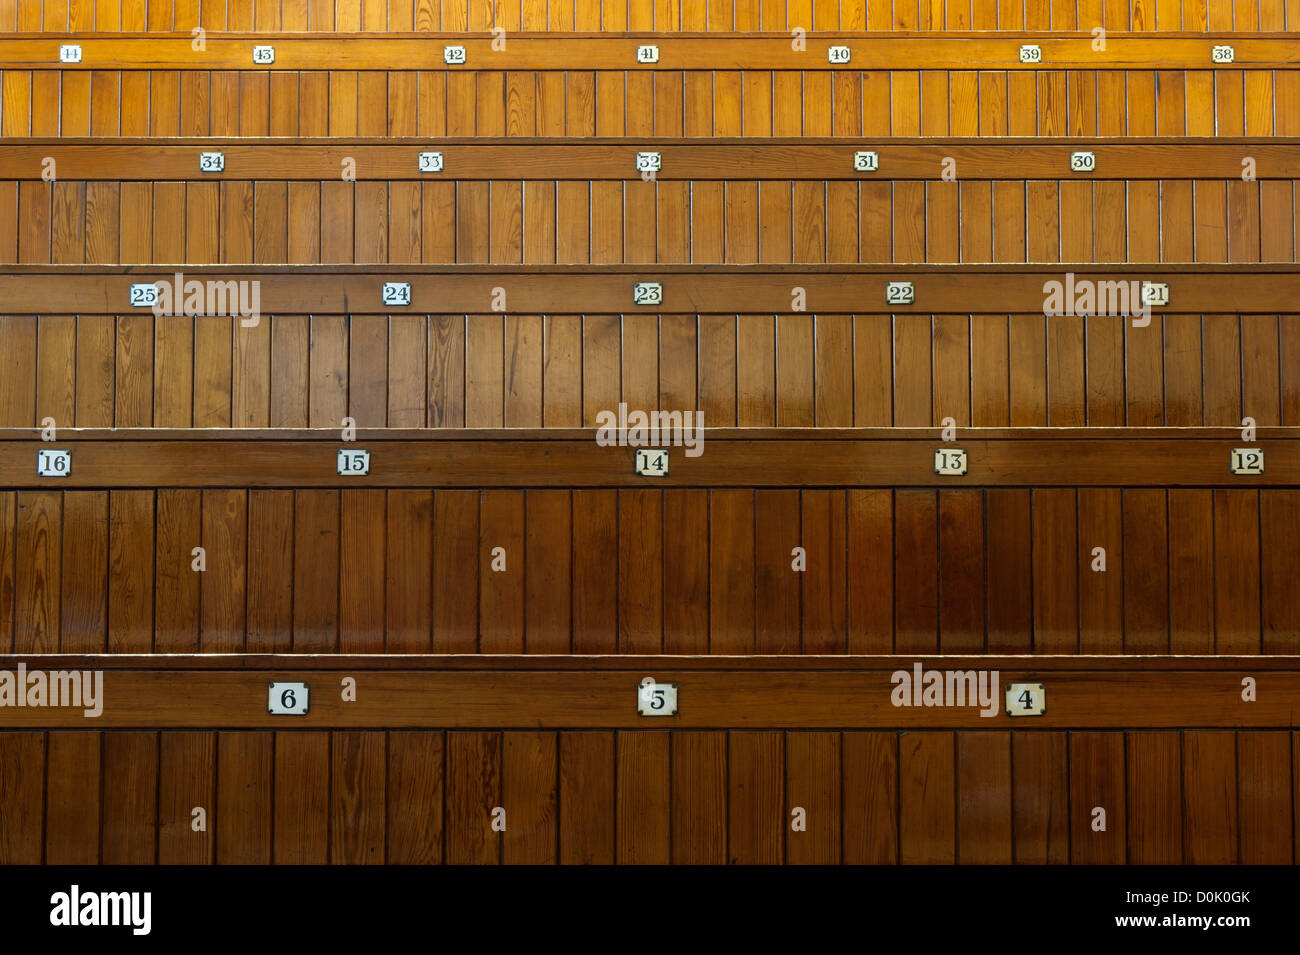 A traditional lecture theatre at the University of Manchester. - Stock Image